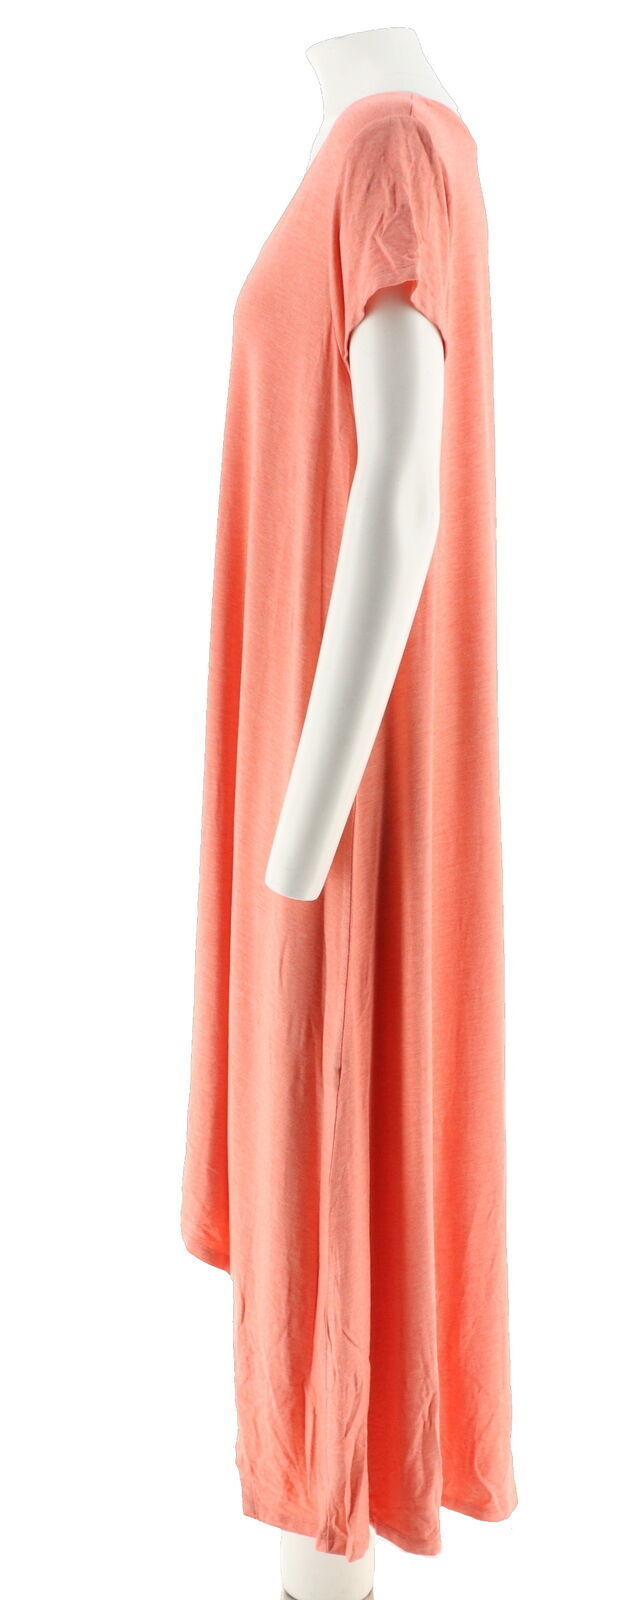 Halston Hi-Low Hem Short Slv Knit Maxi Dress Heather Soft Coral M NEW A274136